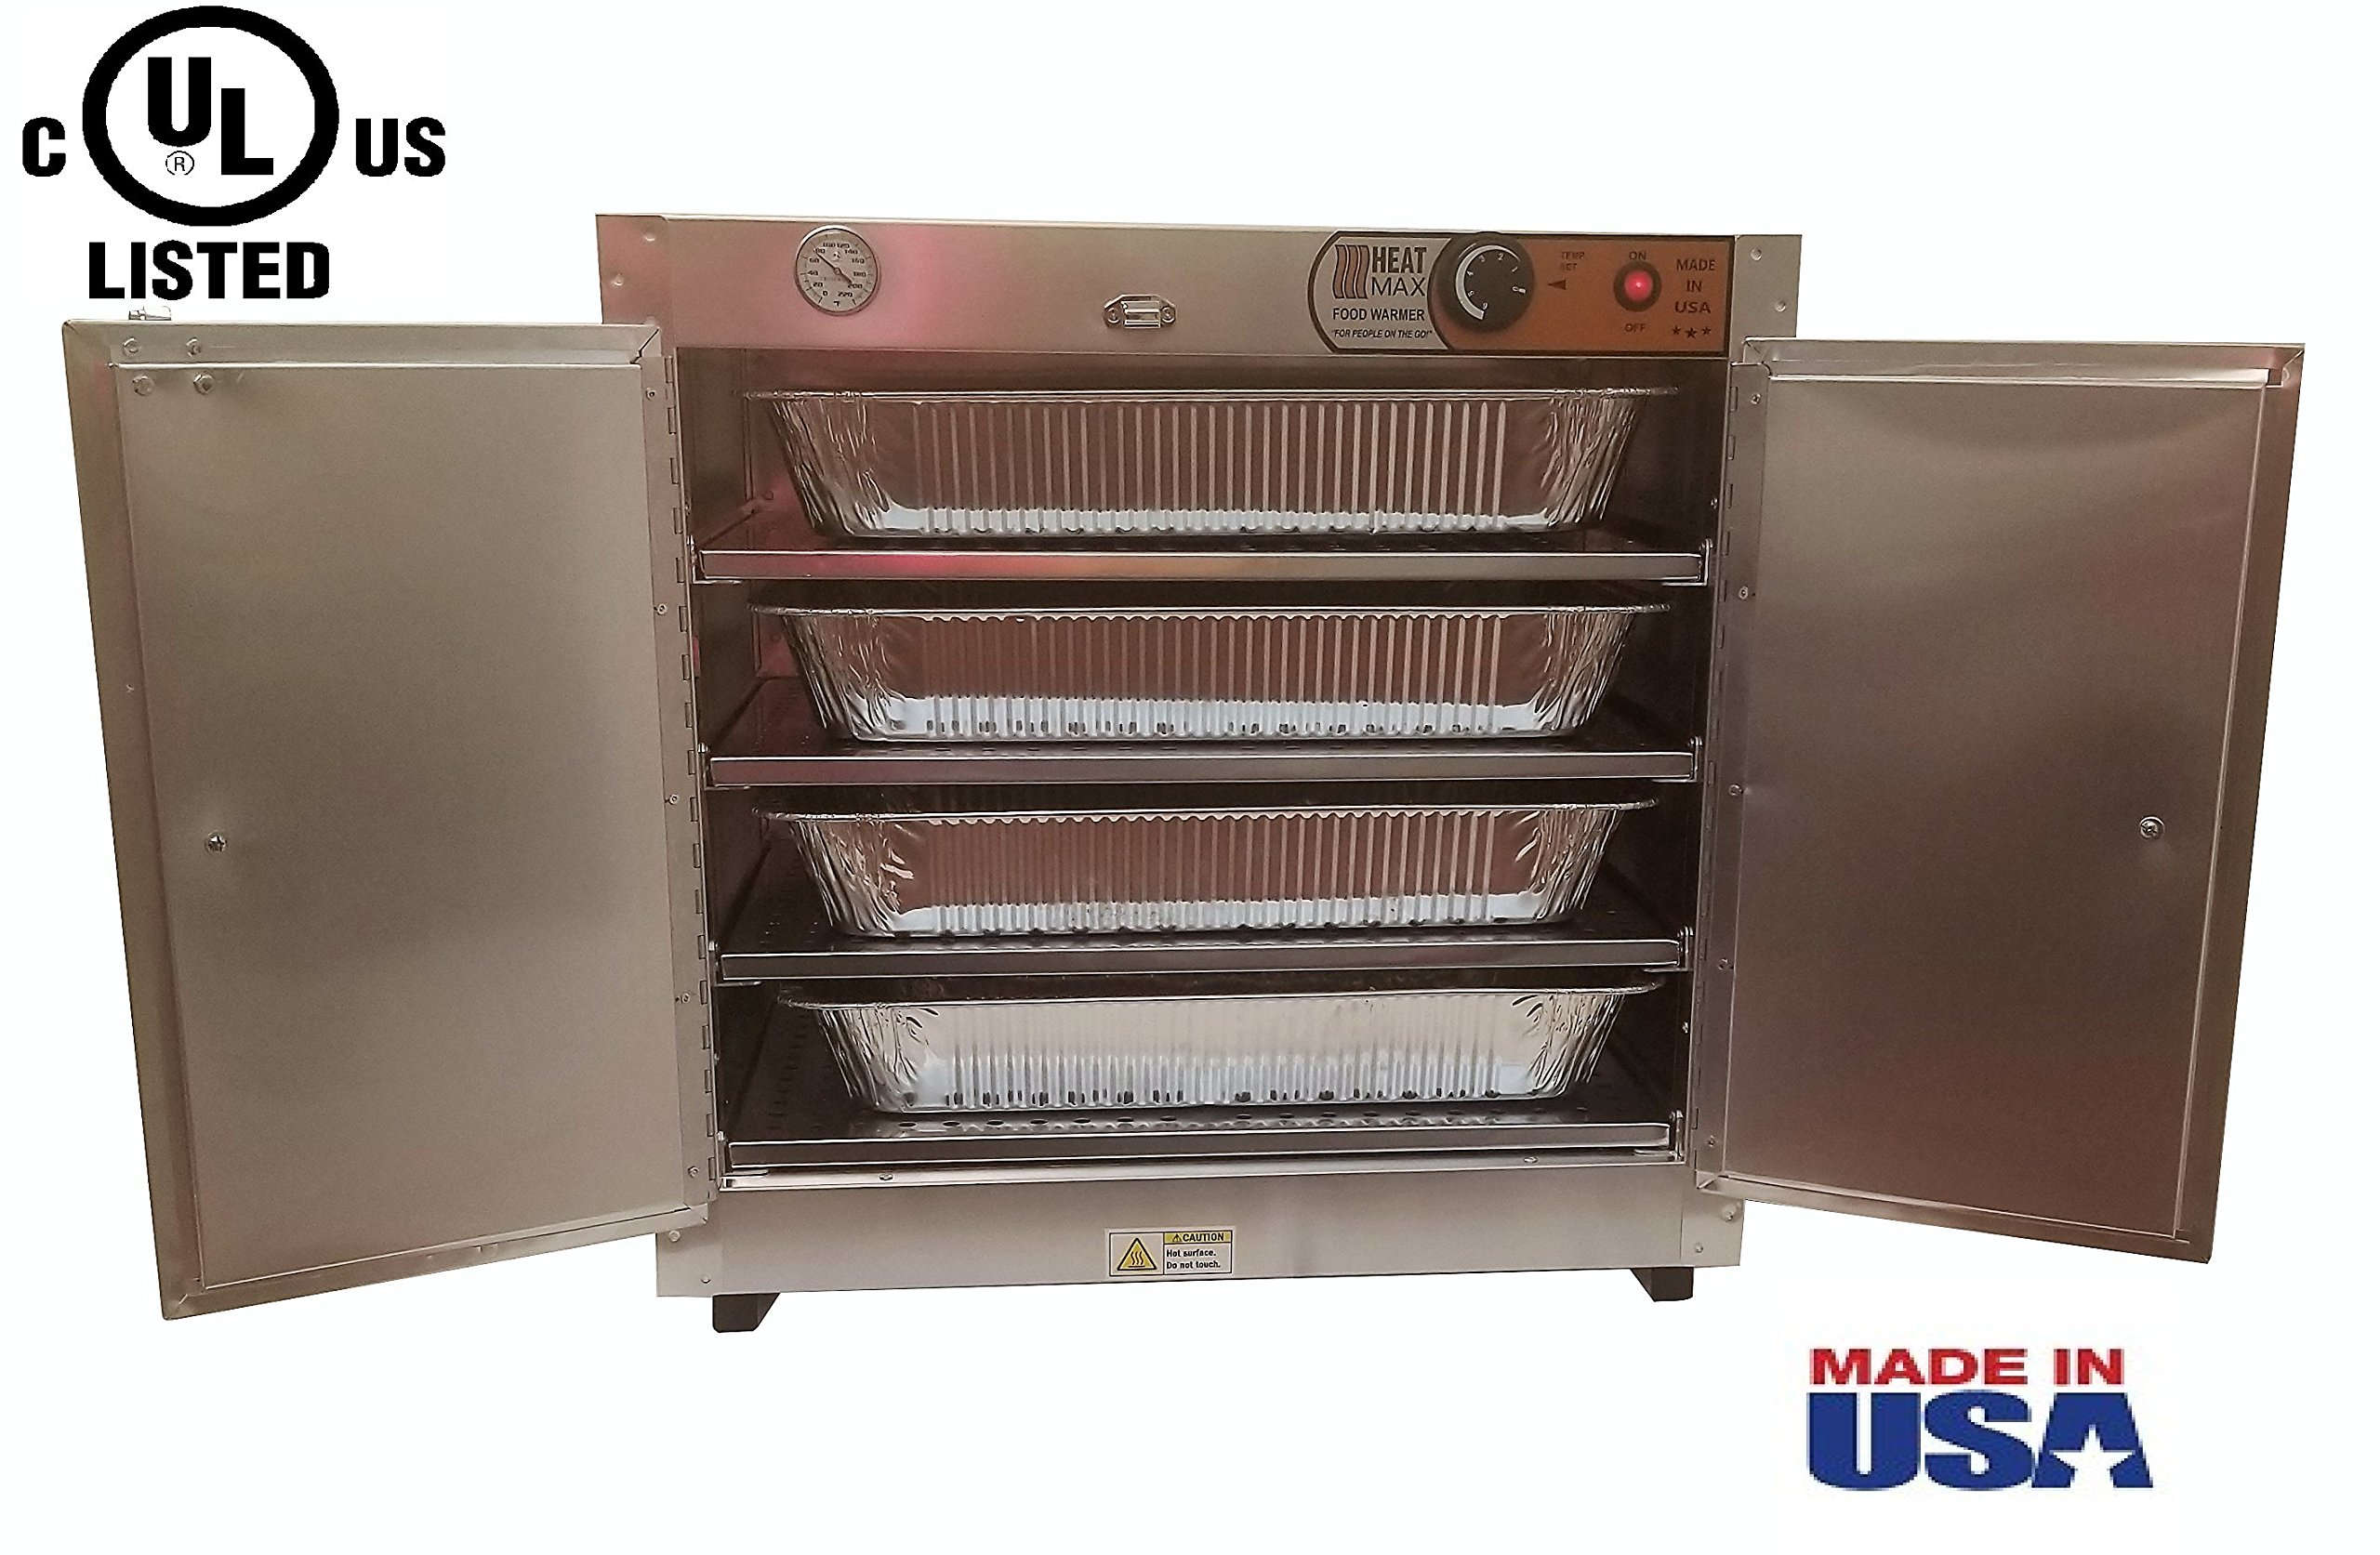 Commercial 110V Catering Hot Box Proofer Food Warmer w/ Water Tray 25''x15''x24'' by HeatMax